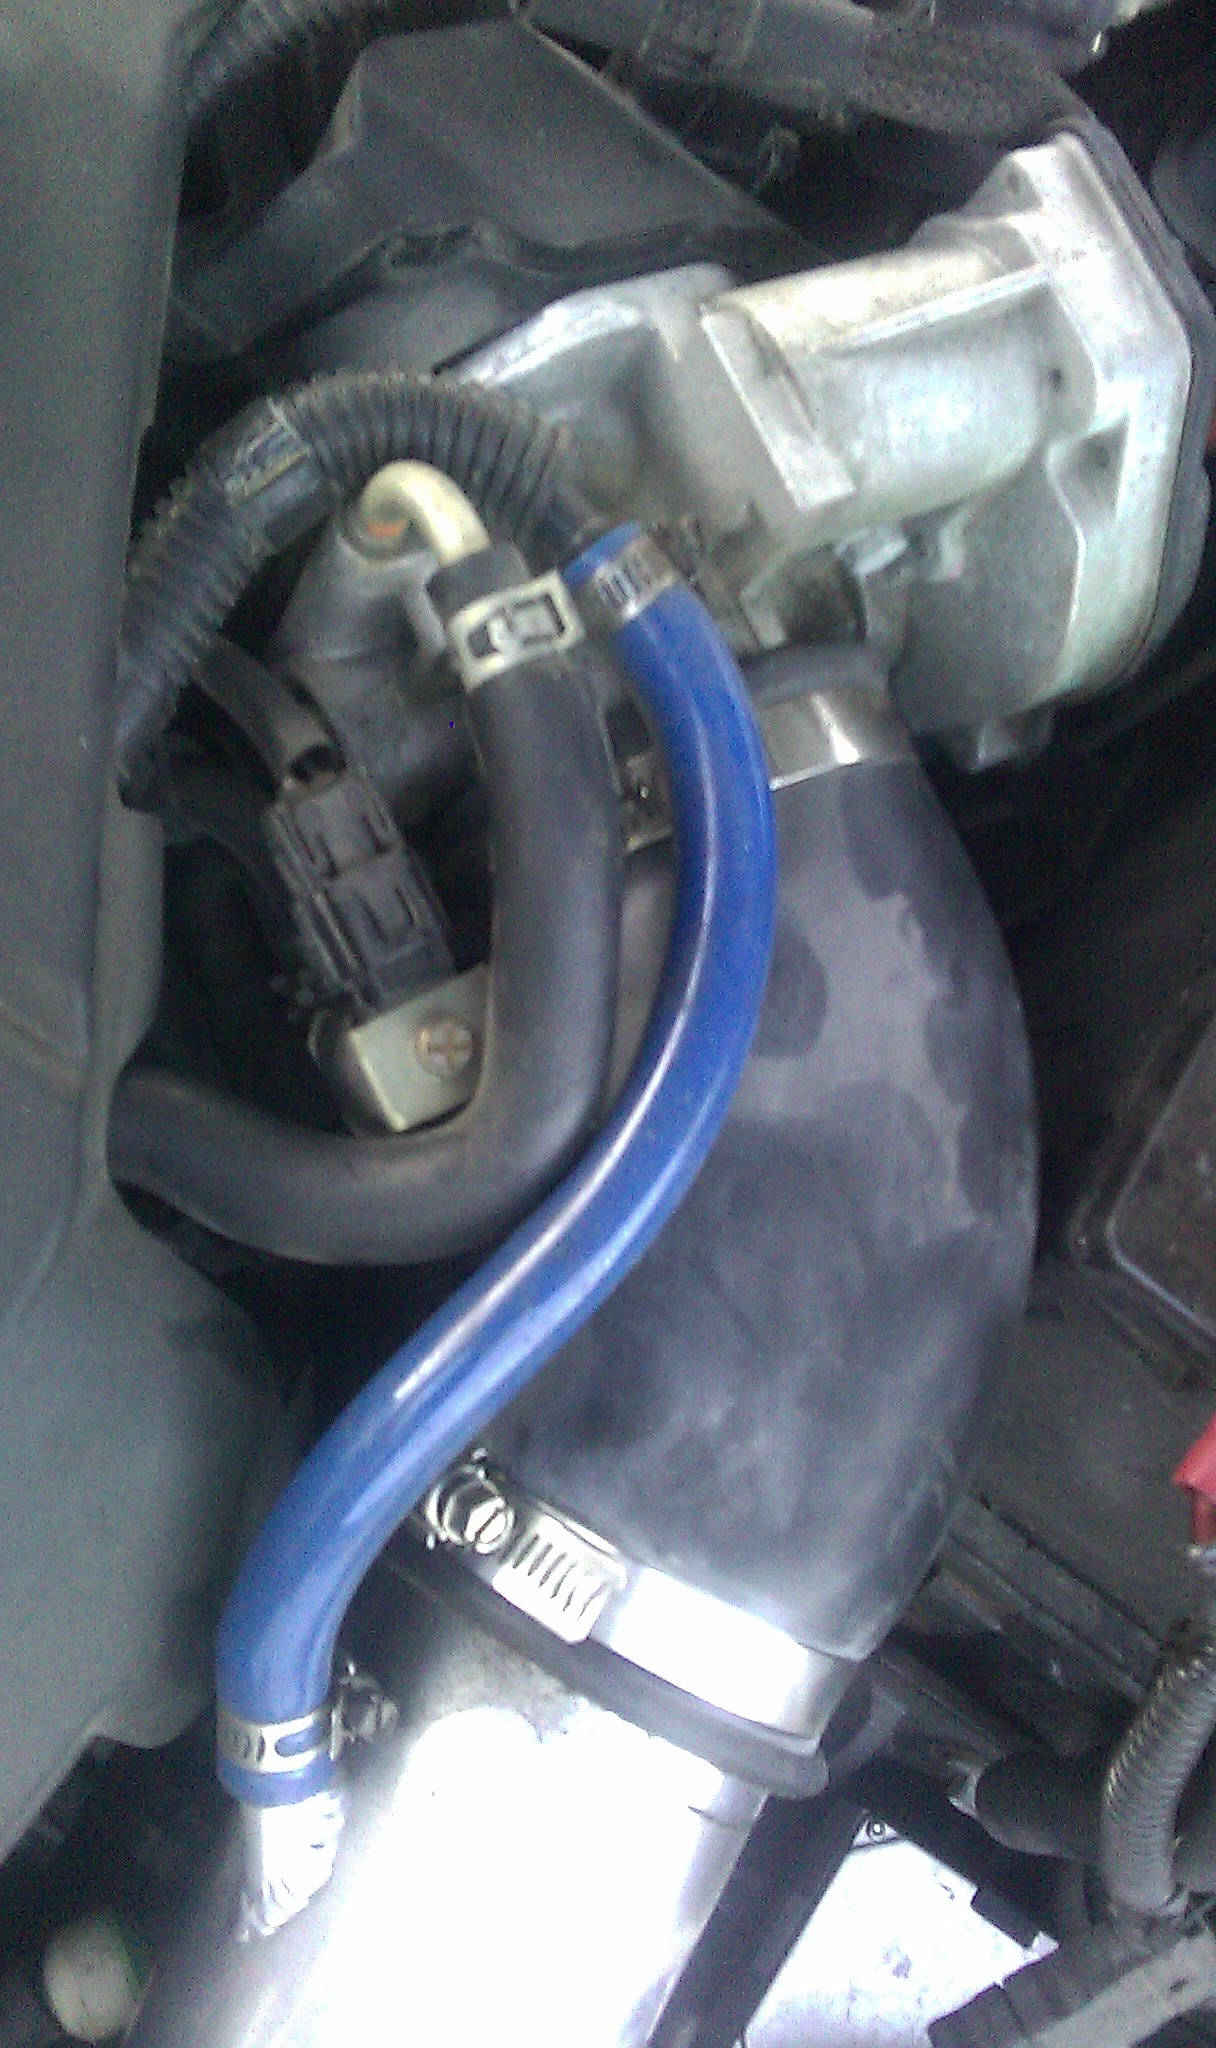 Mazda 6 Check Engine Light On With P0171 Code 2003 Fuel Filter If You Cant Make Out The Pictures Get Me A Real Email Address And Ill Just Forward Them All To